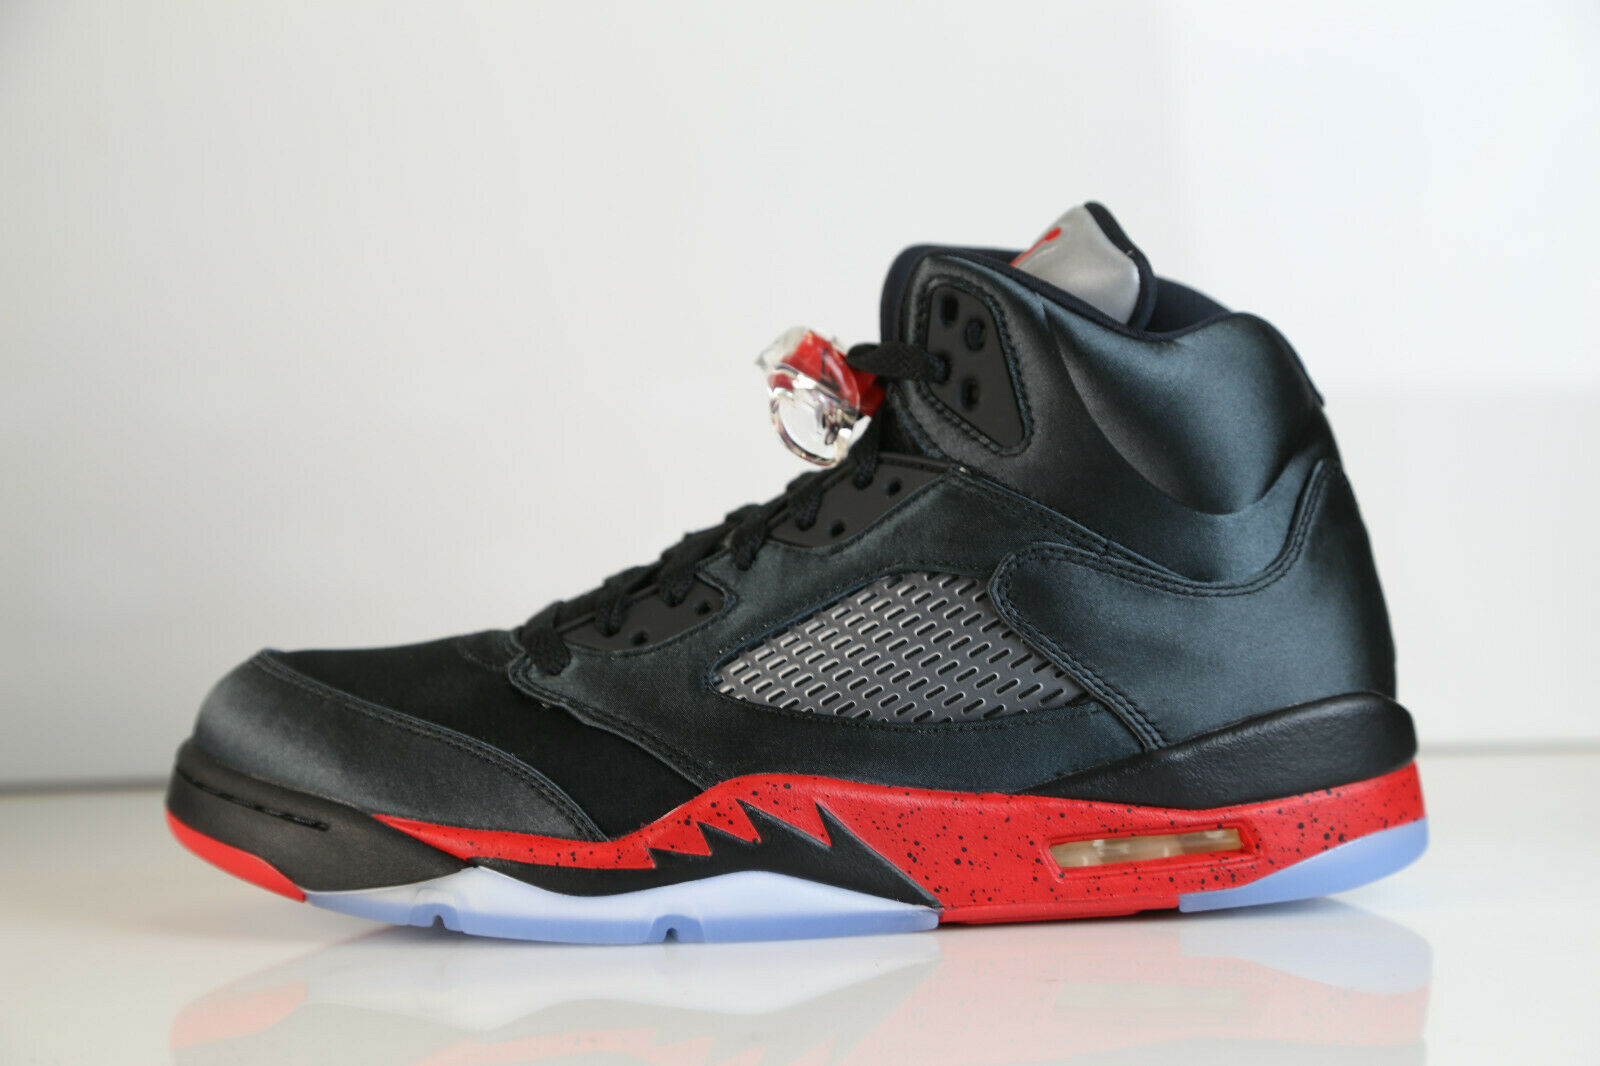 Nike Air Jordan Retro 5 Satin Bred Black University Red 136027-006 7.5-12